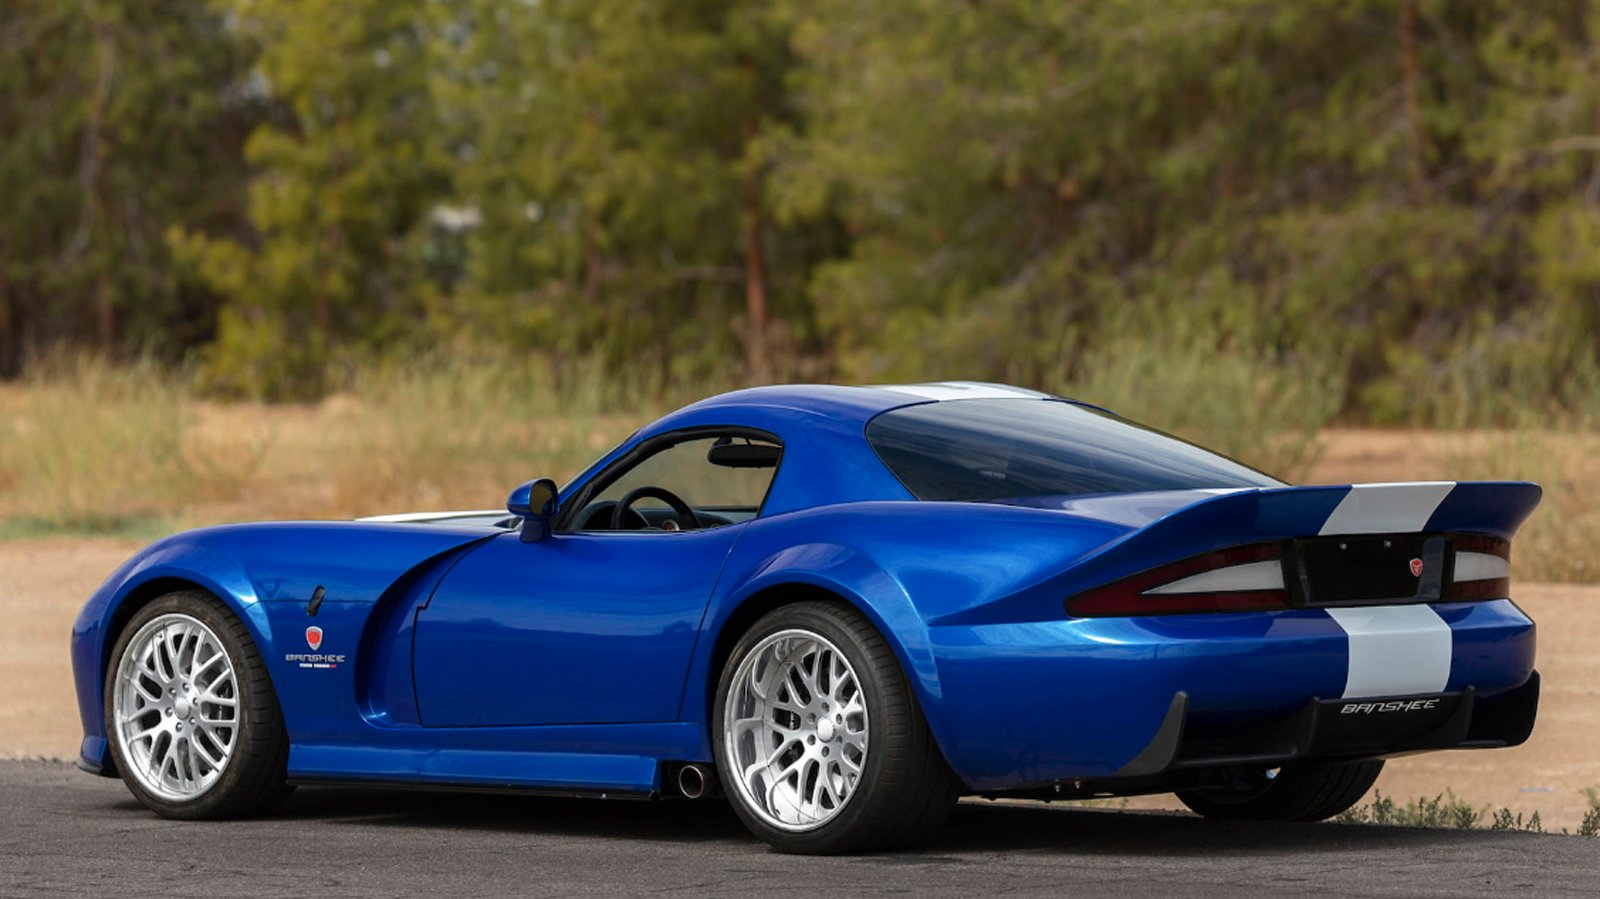 the sale of shoes on sale 50% price Real Life Bravado Banshee From GTA V Headed to Auction ...